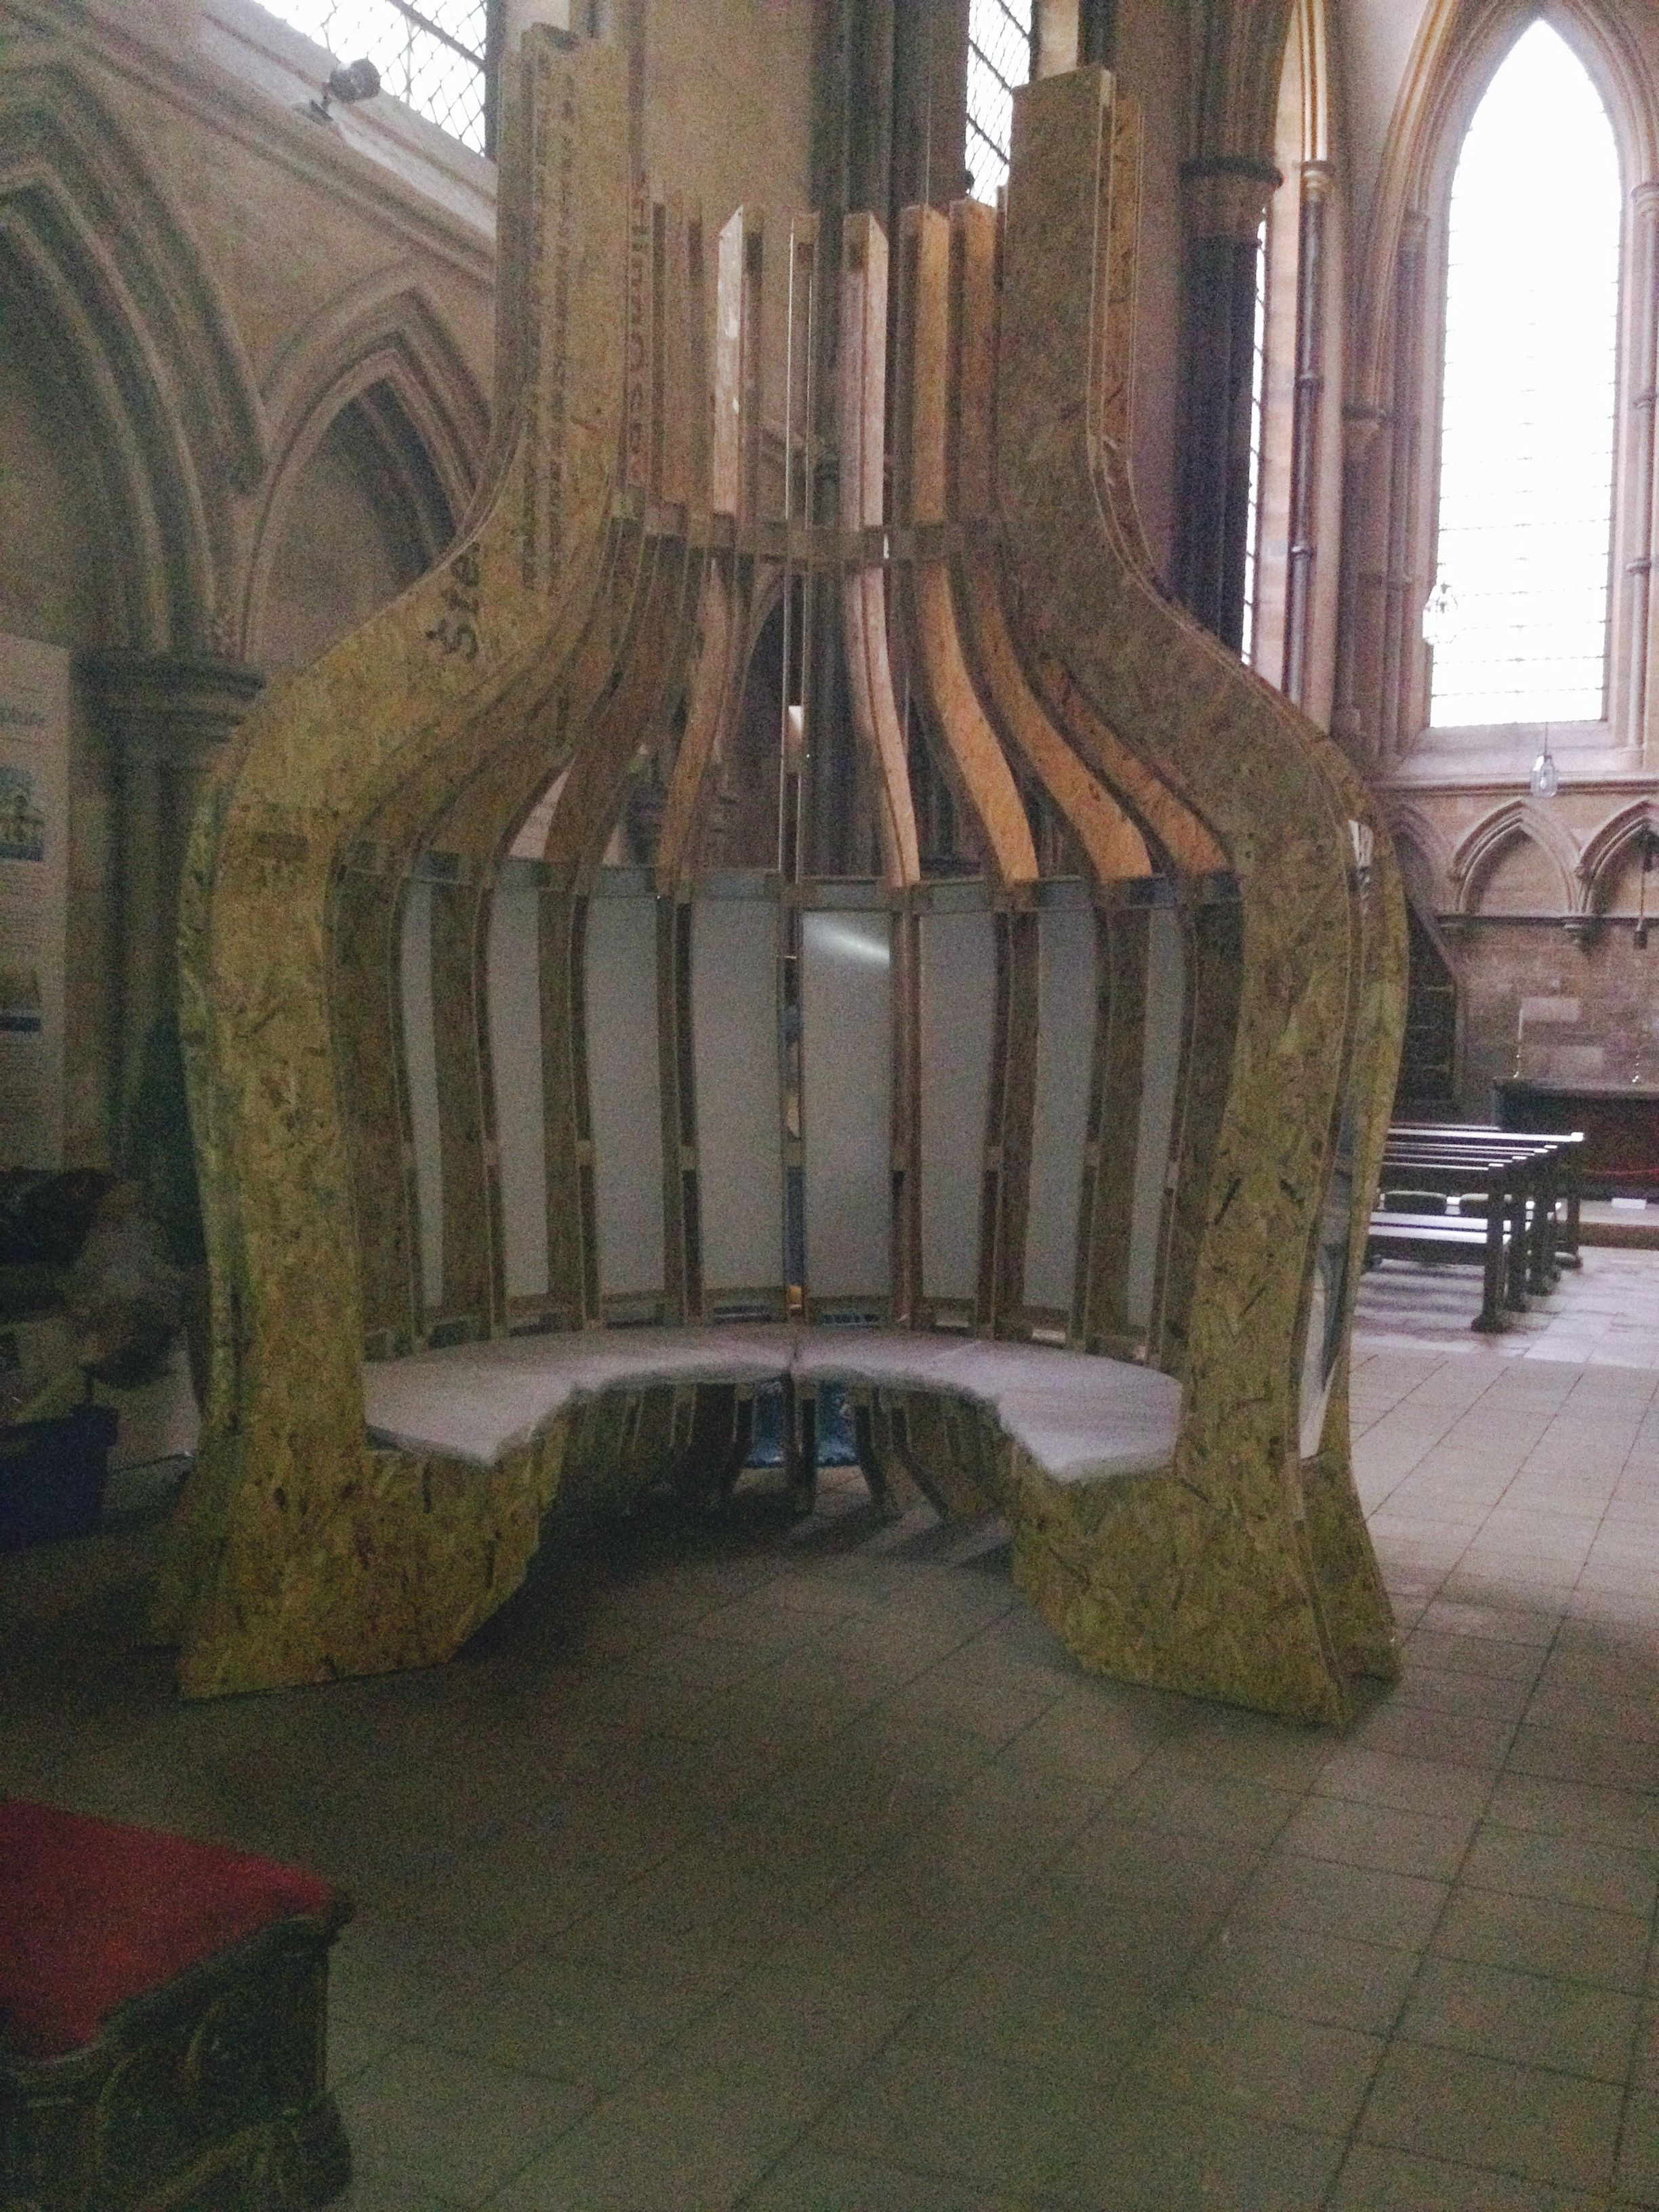 Competition winning design for a contemplation space inside Lincoln Cathedral for part of the Labyrinth festival taking part in August 2014.